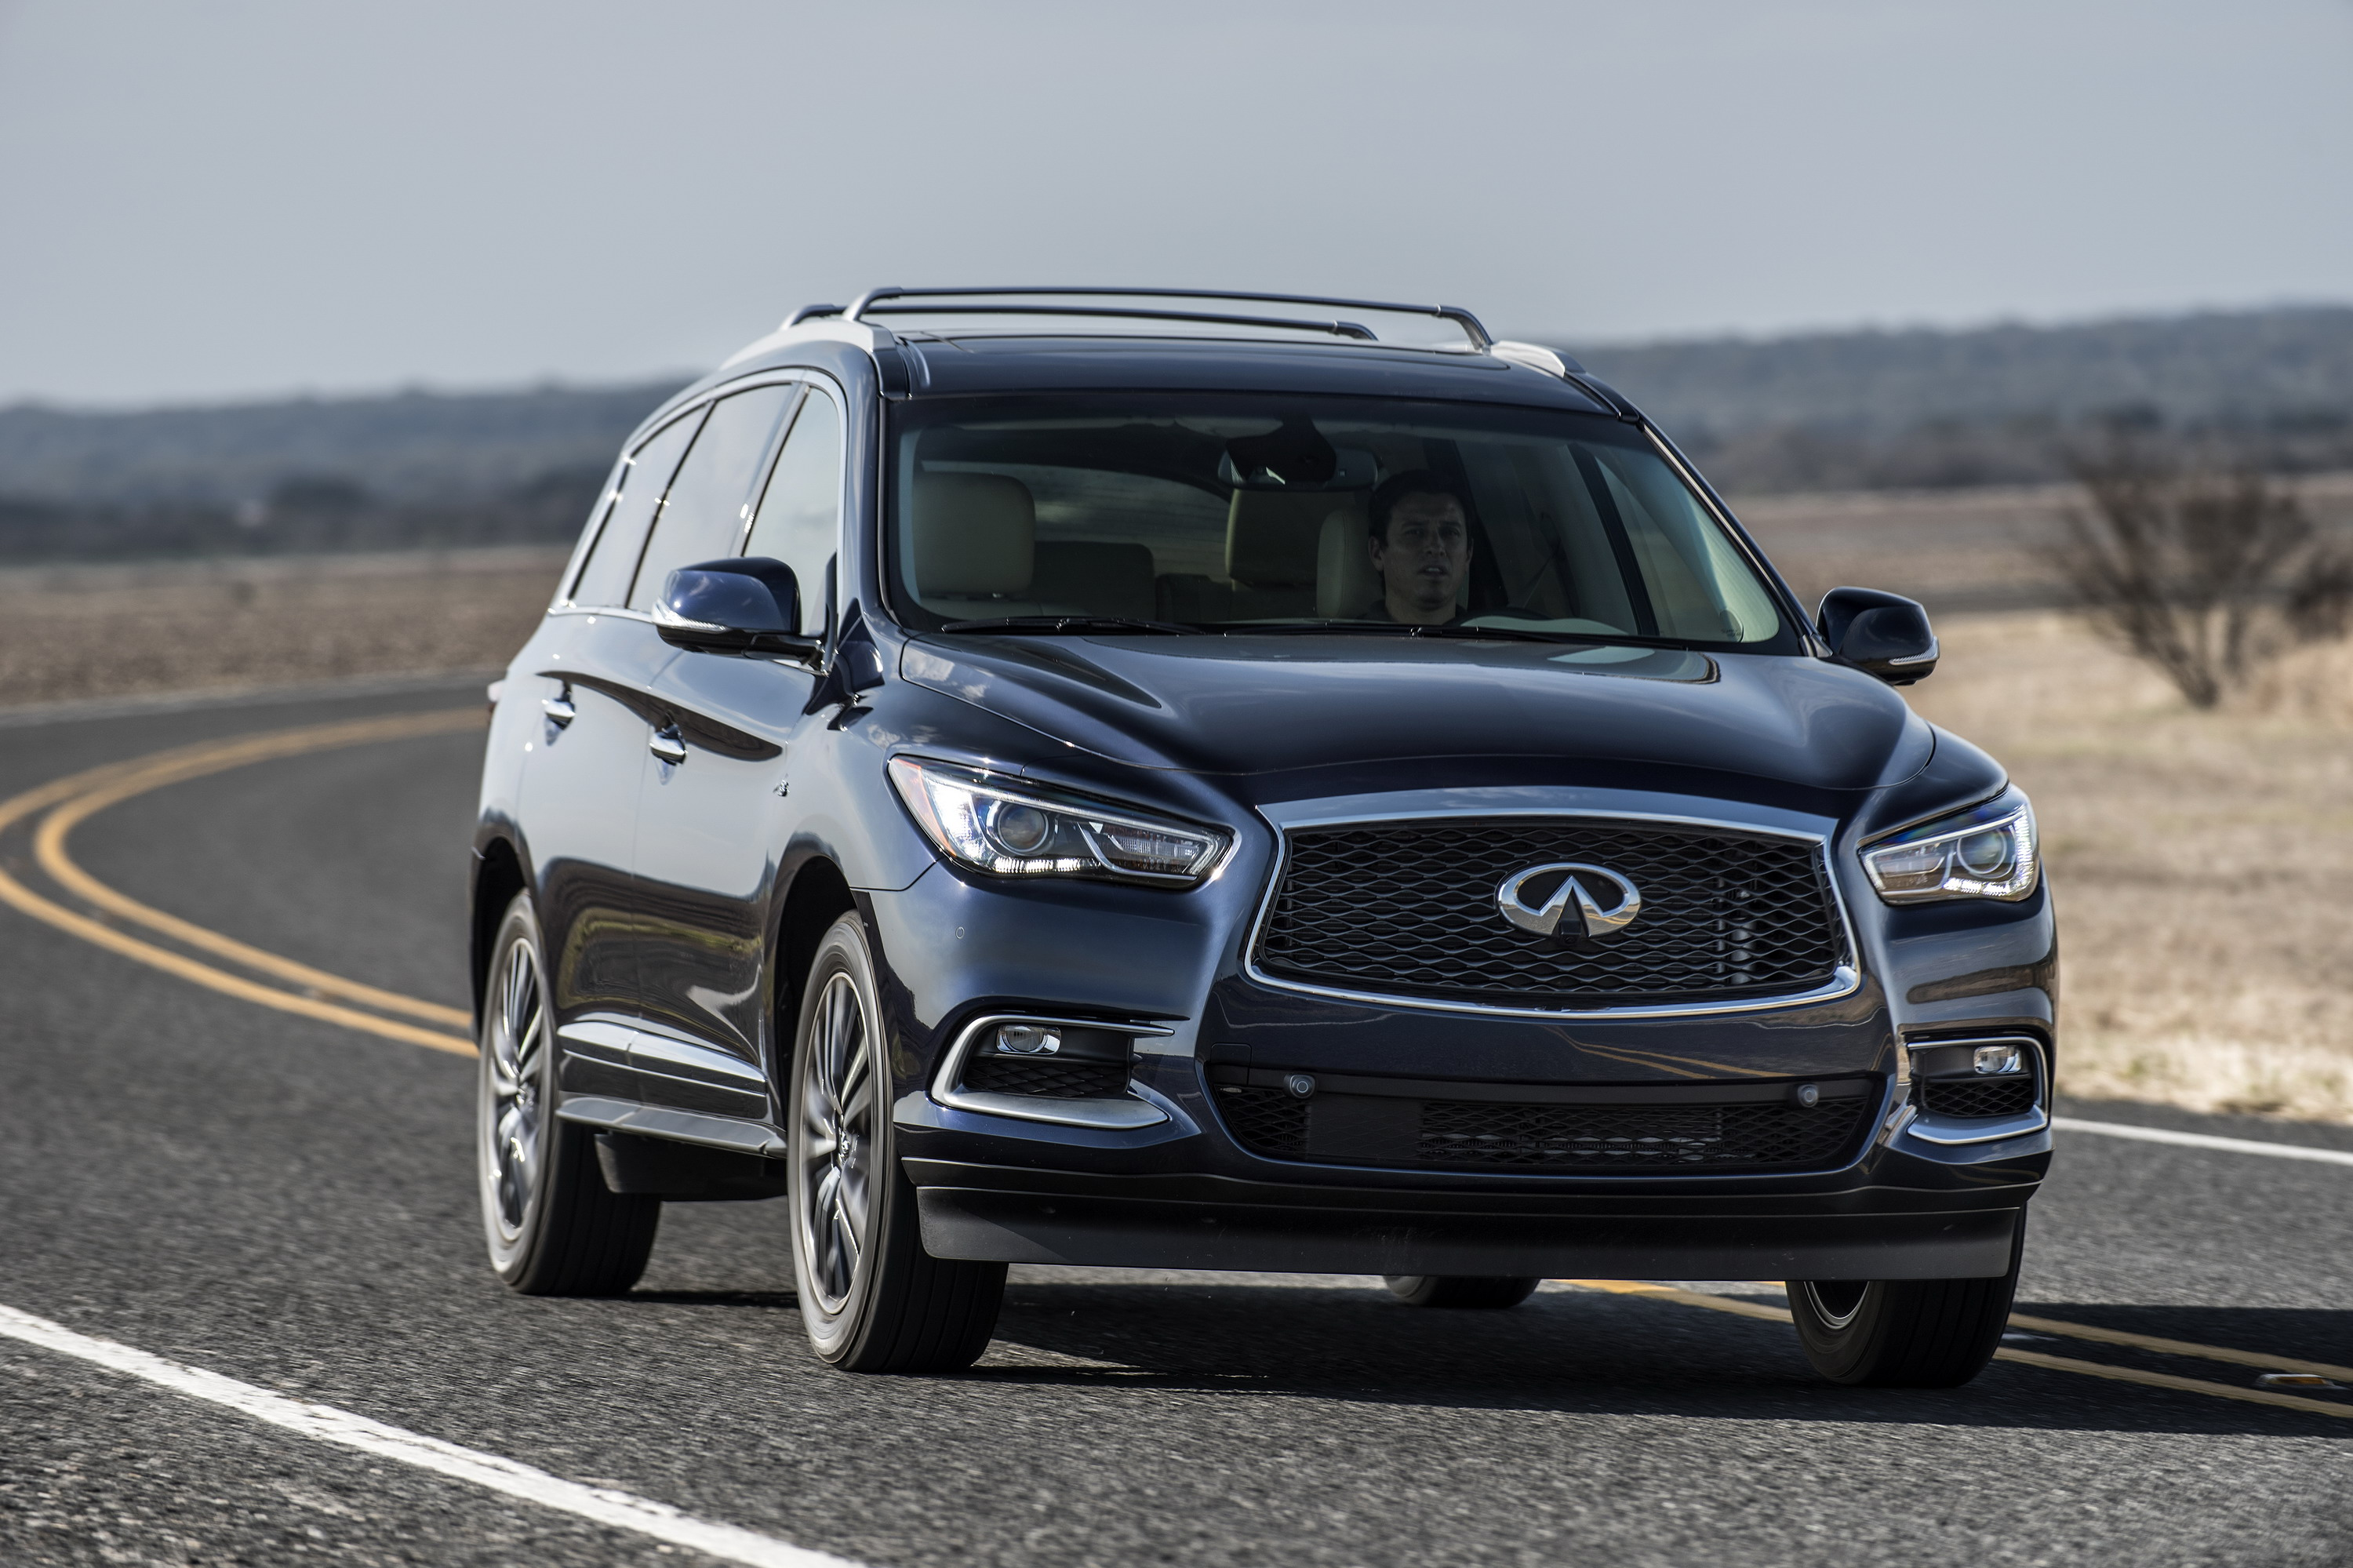 infinity speed suv infiniti cars top